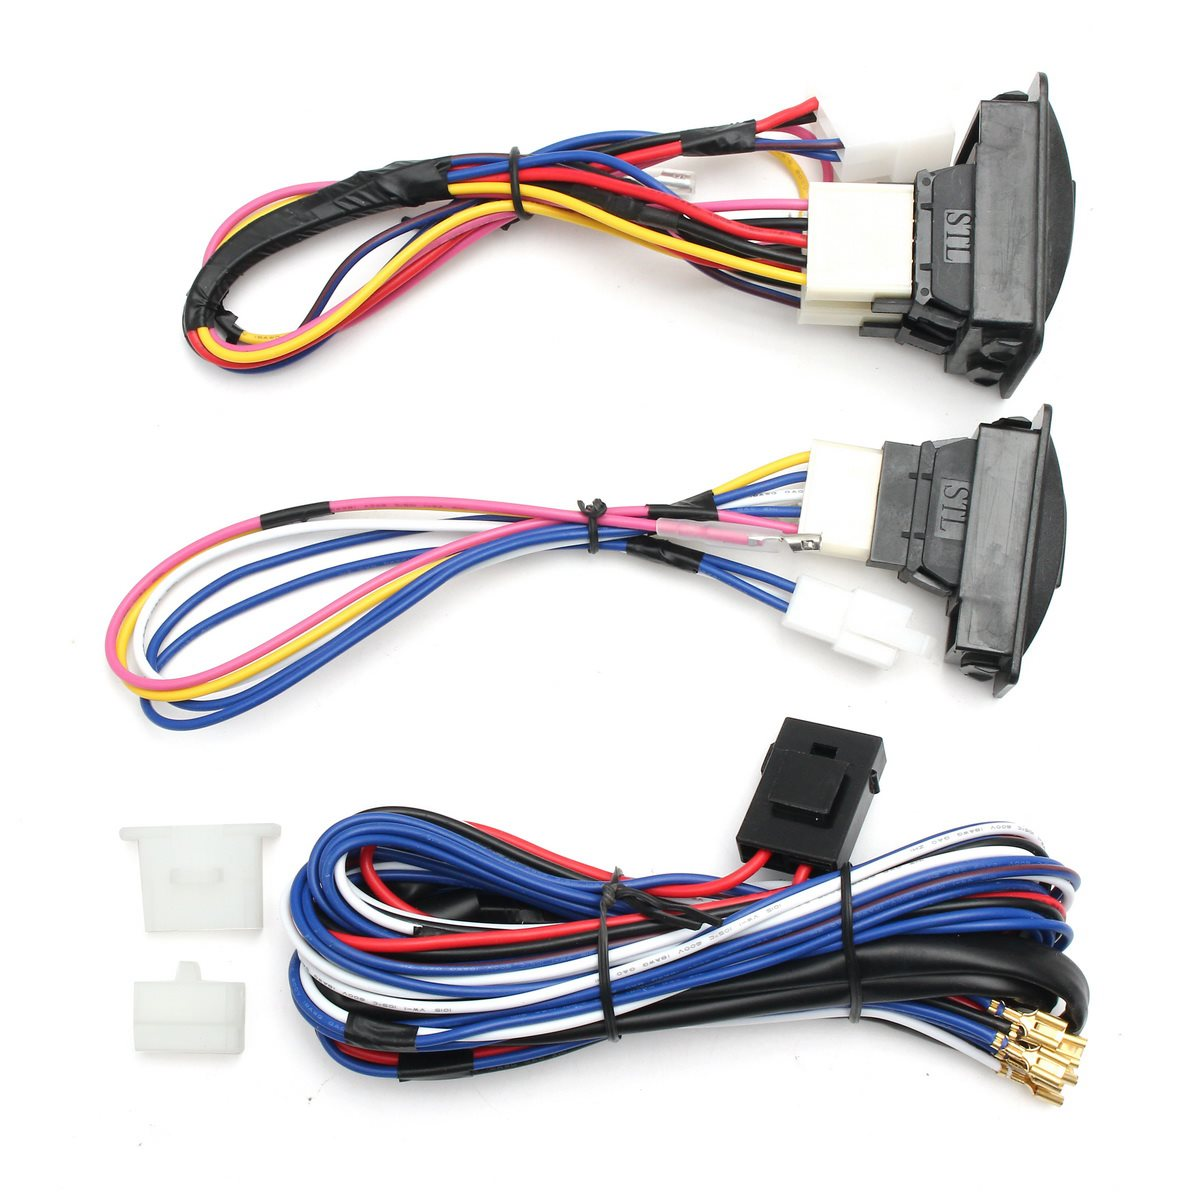 Universal 12v Power Window Glass Lock Rocker Lift Switch Wiring Ford Harness Kits For Chevrolet Hyundai Nissan Toyota Vw In Car Switches Relays From